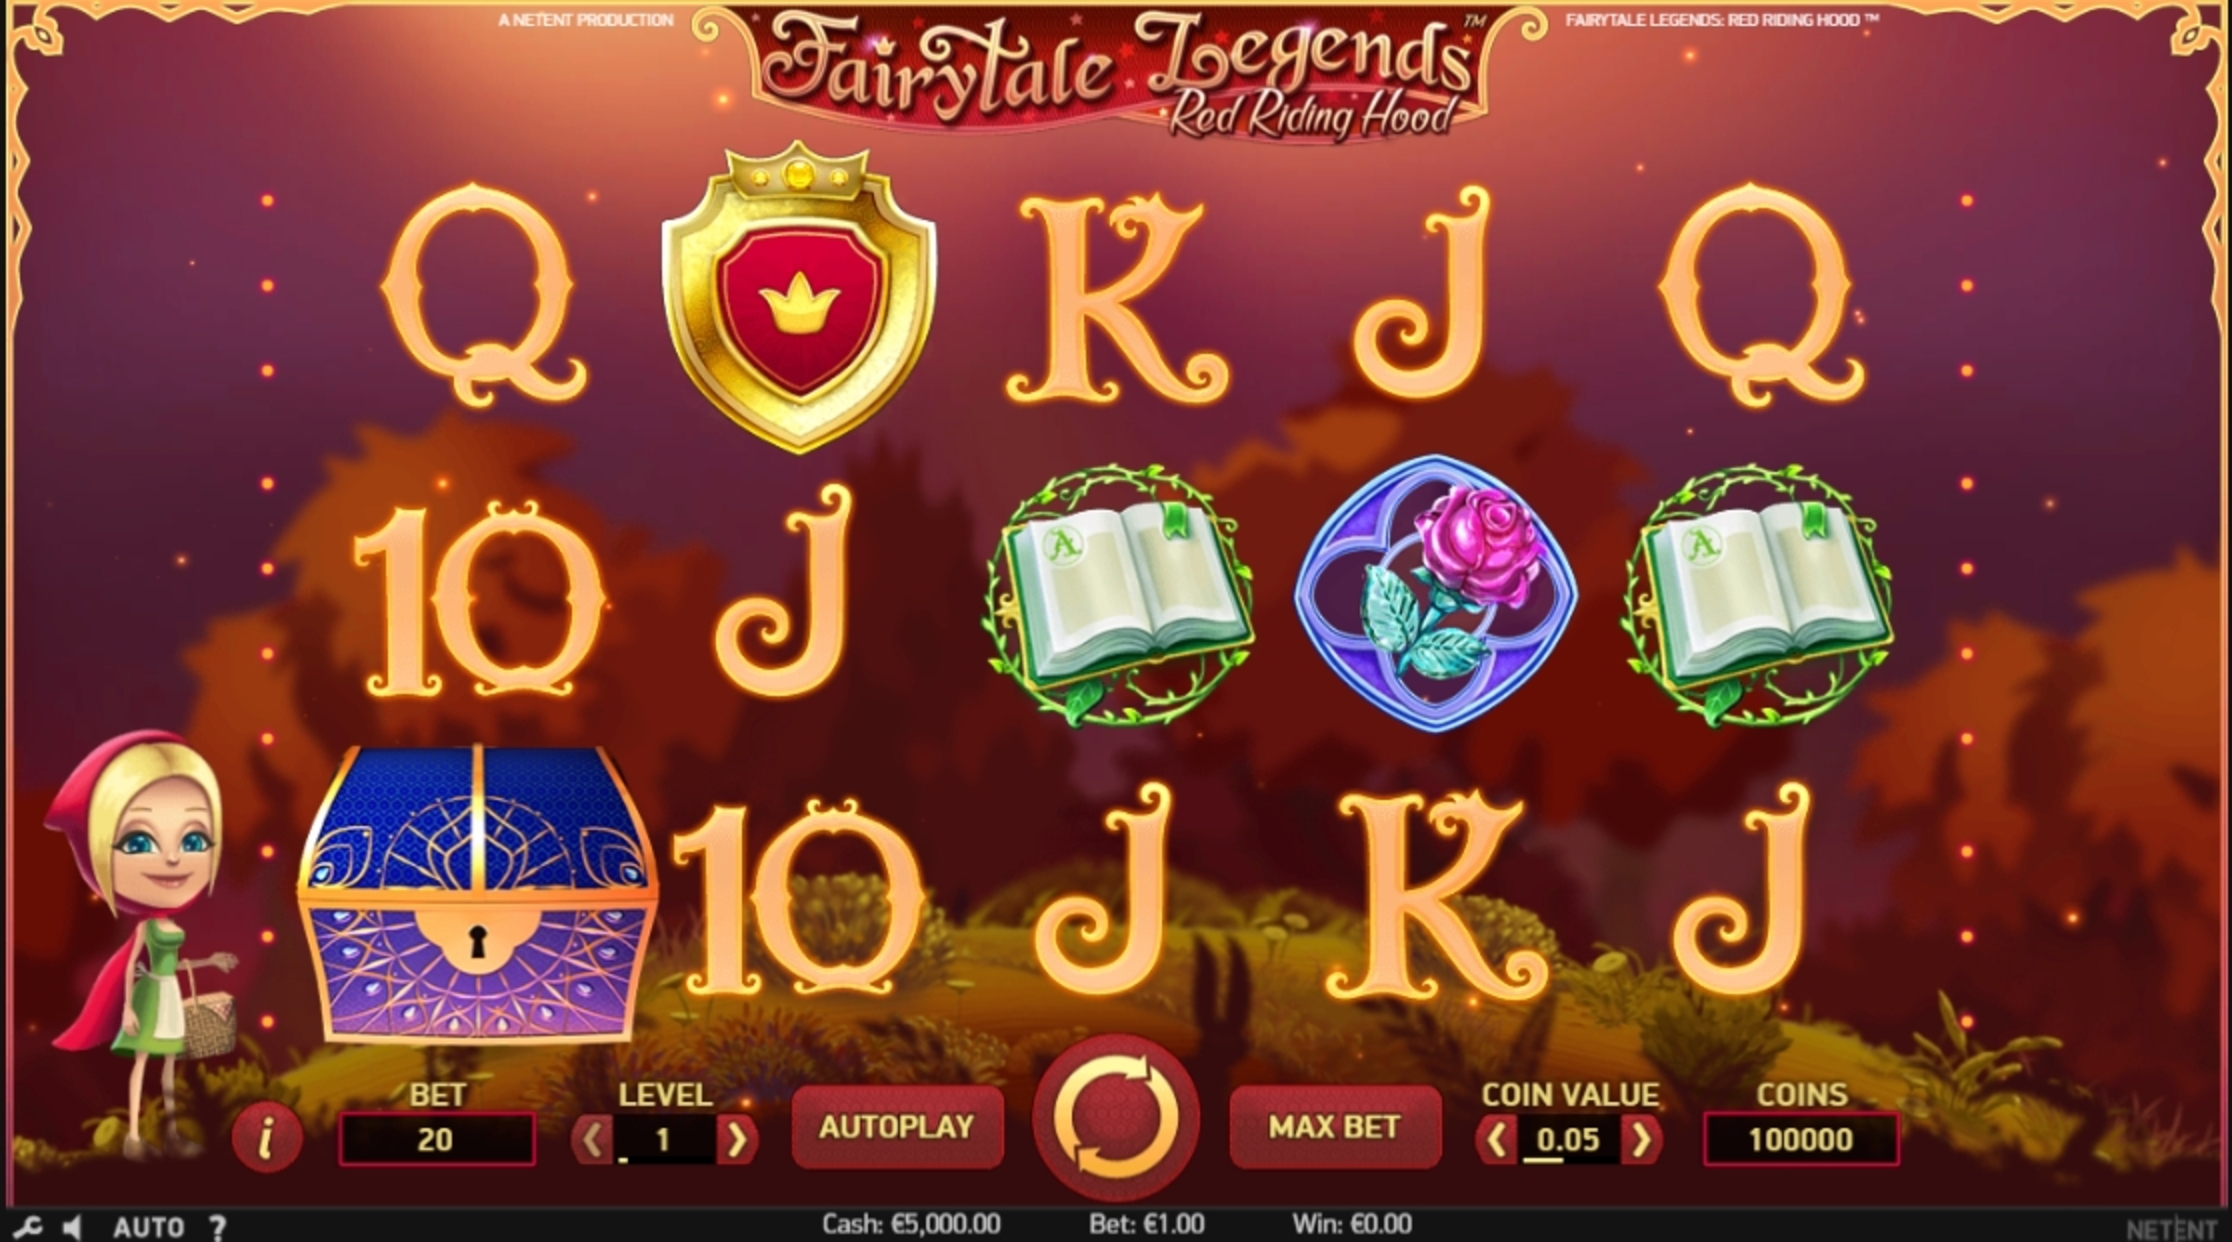 Reels in Fairytale Legends: Red Riding Hood Slot Game by NetEnt